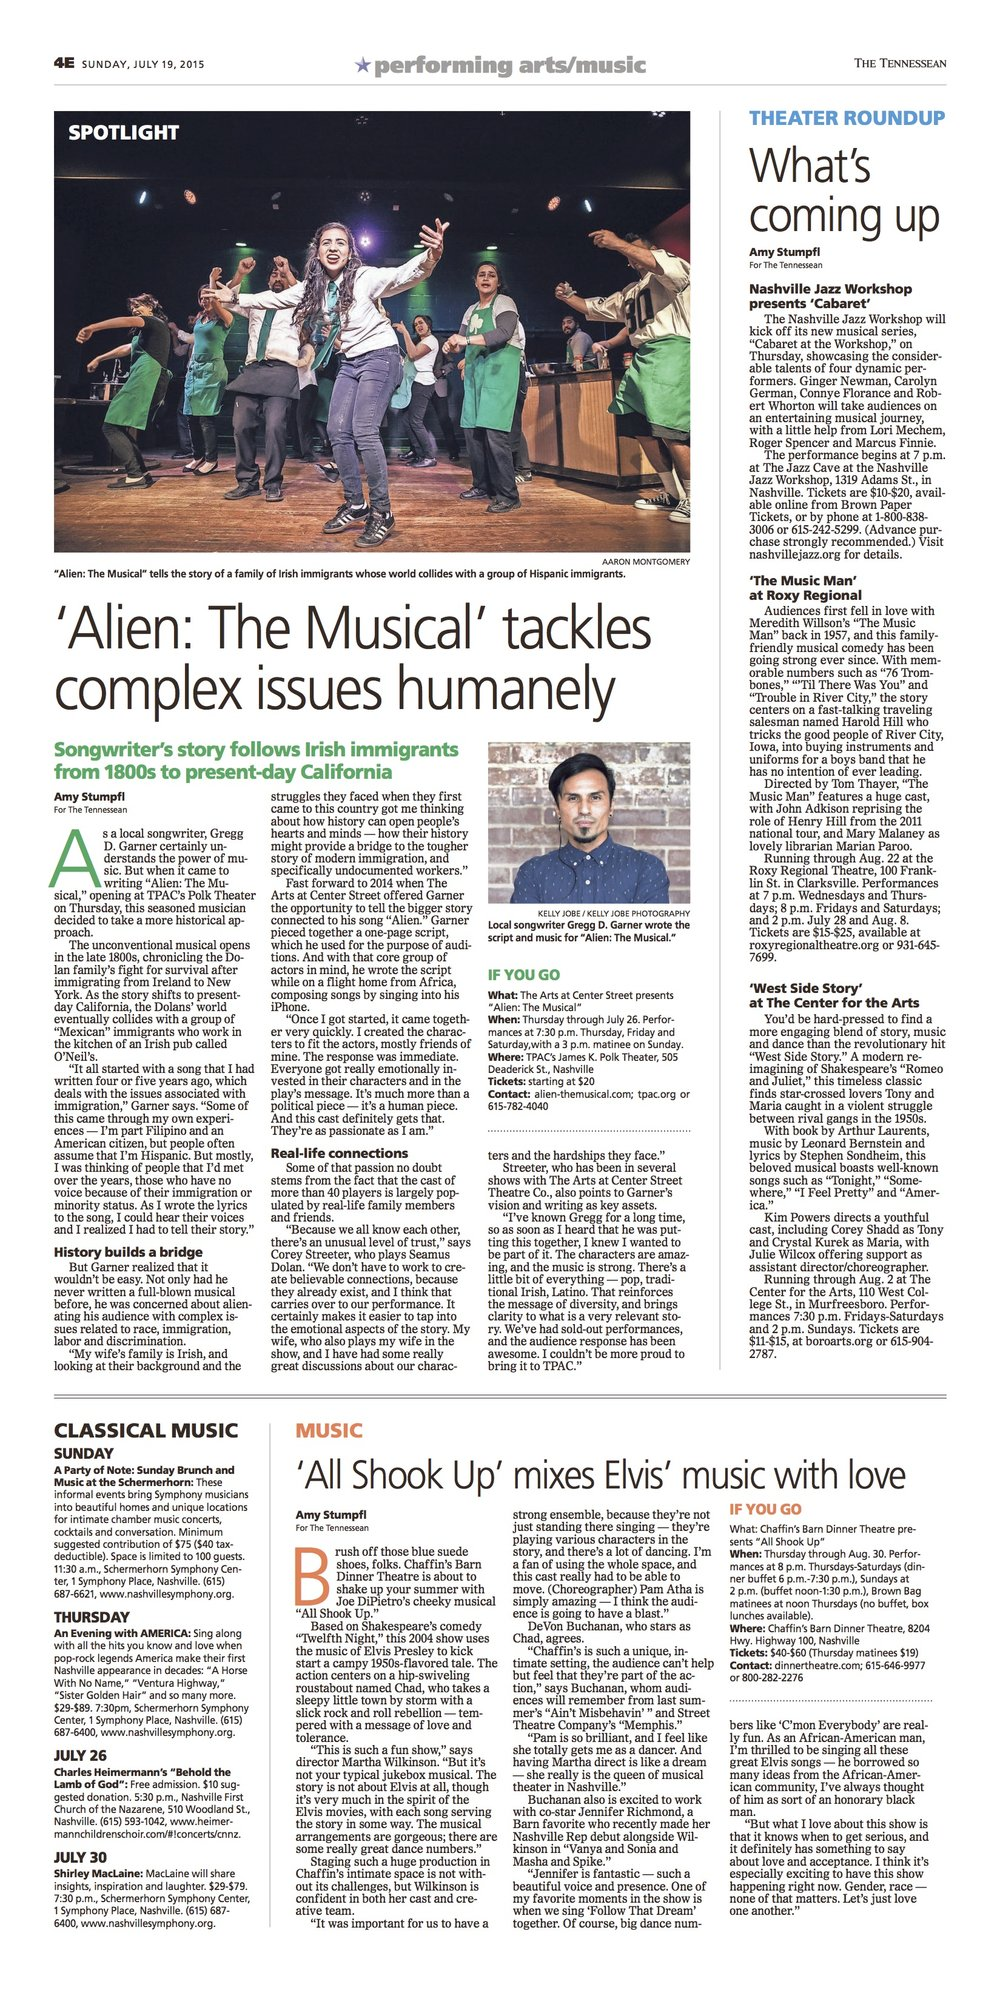 Amy Stumpfl enters into conversation with writer and director of ALIEN: The Musical, Gregg D. Garner, to get the inside scoop on the show, which opens at TPAC's Polk Theater in July 2015.